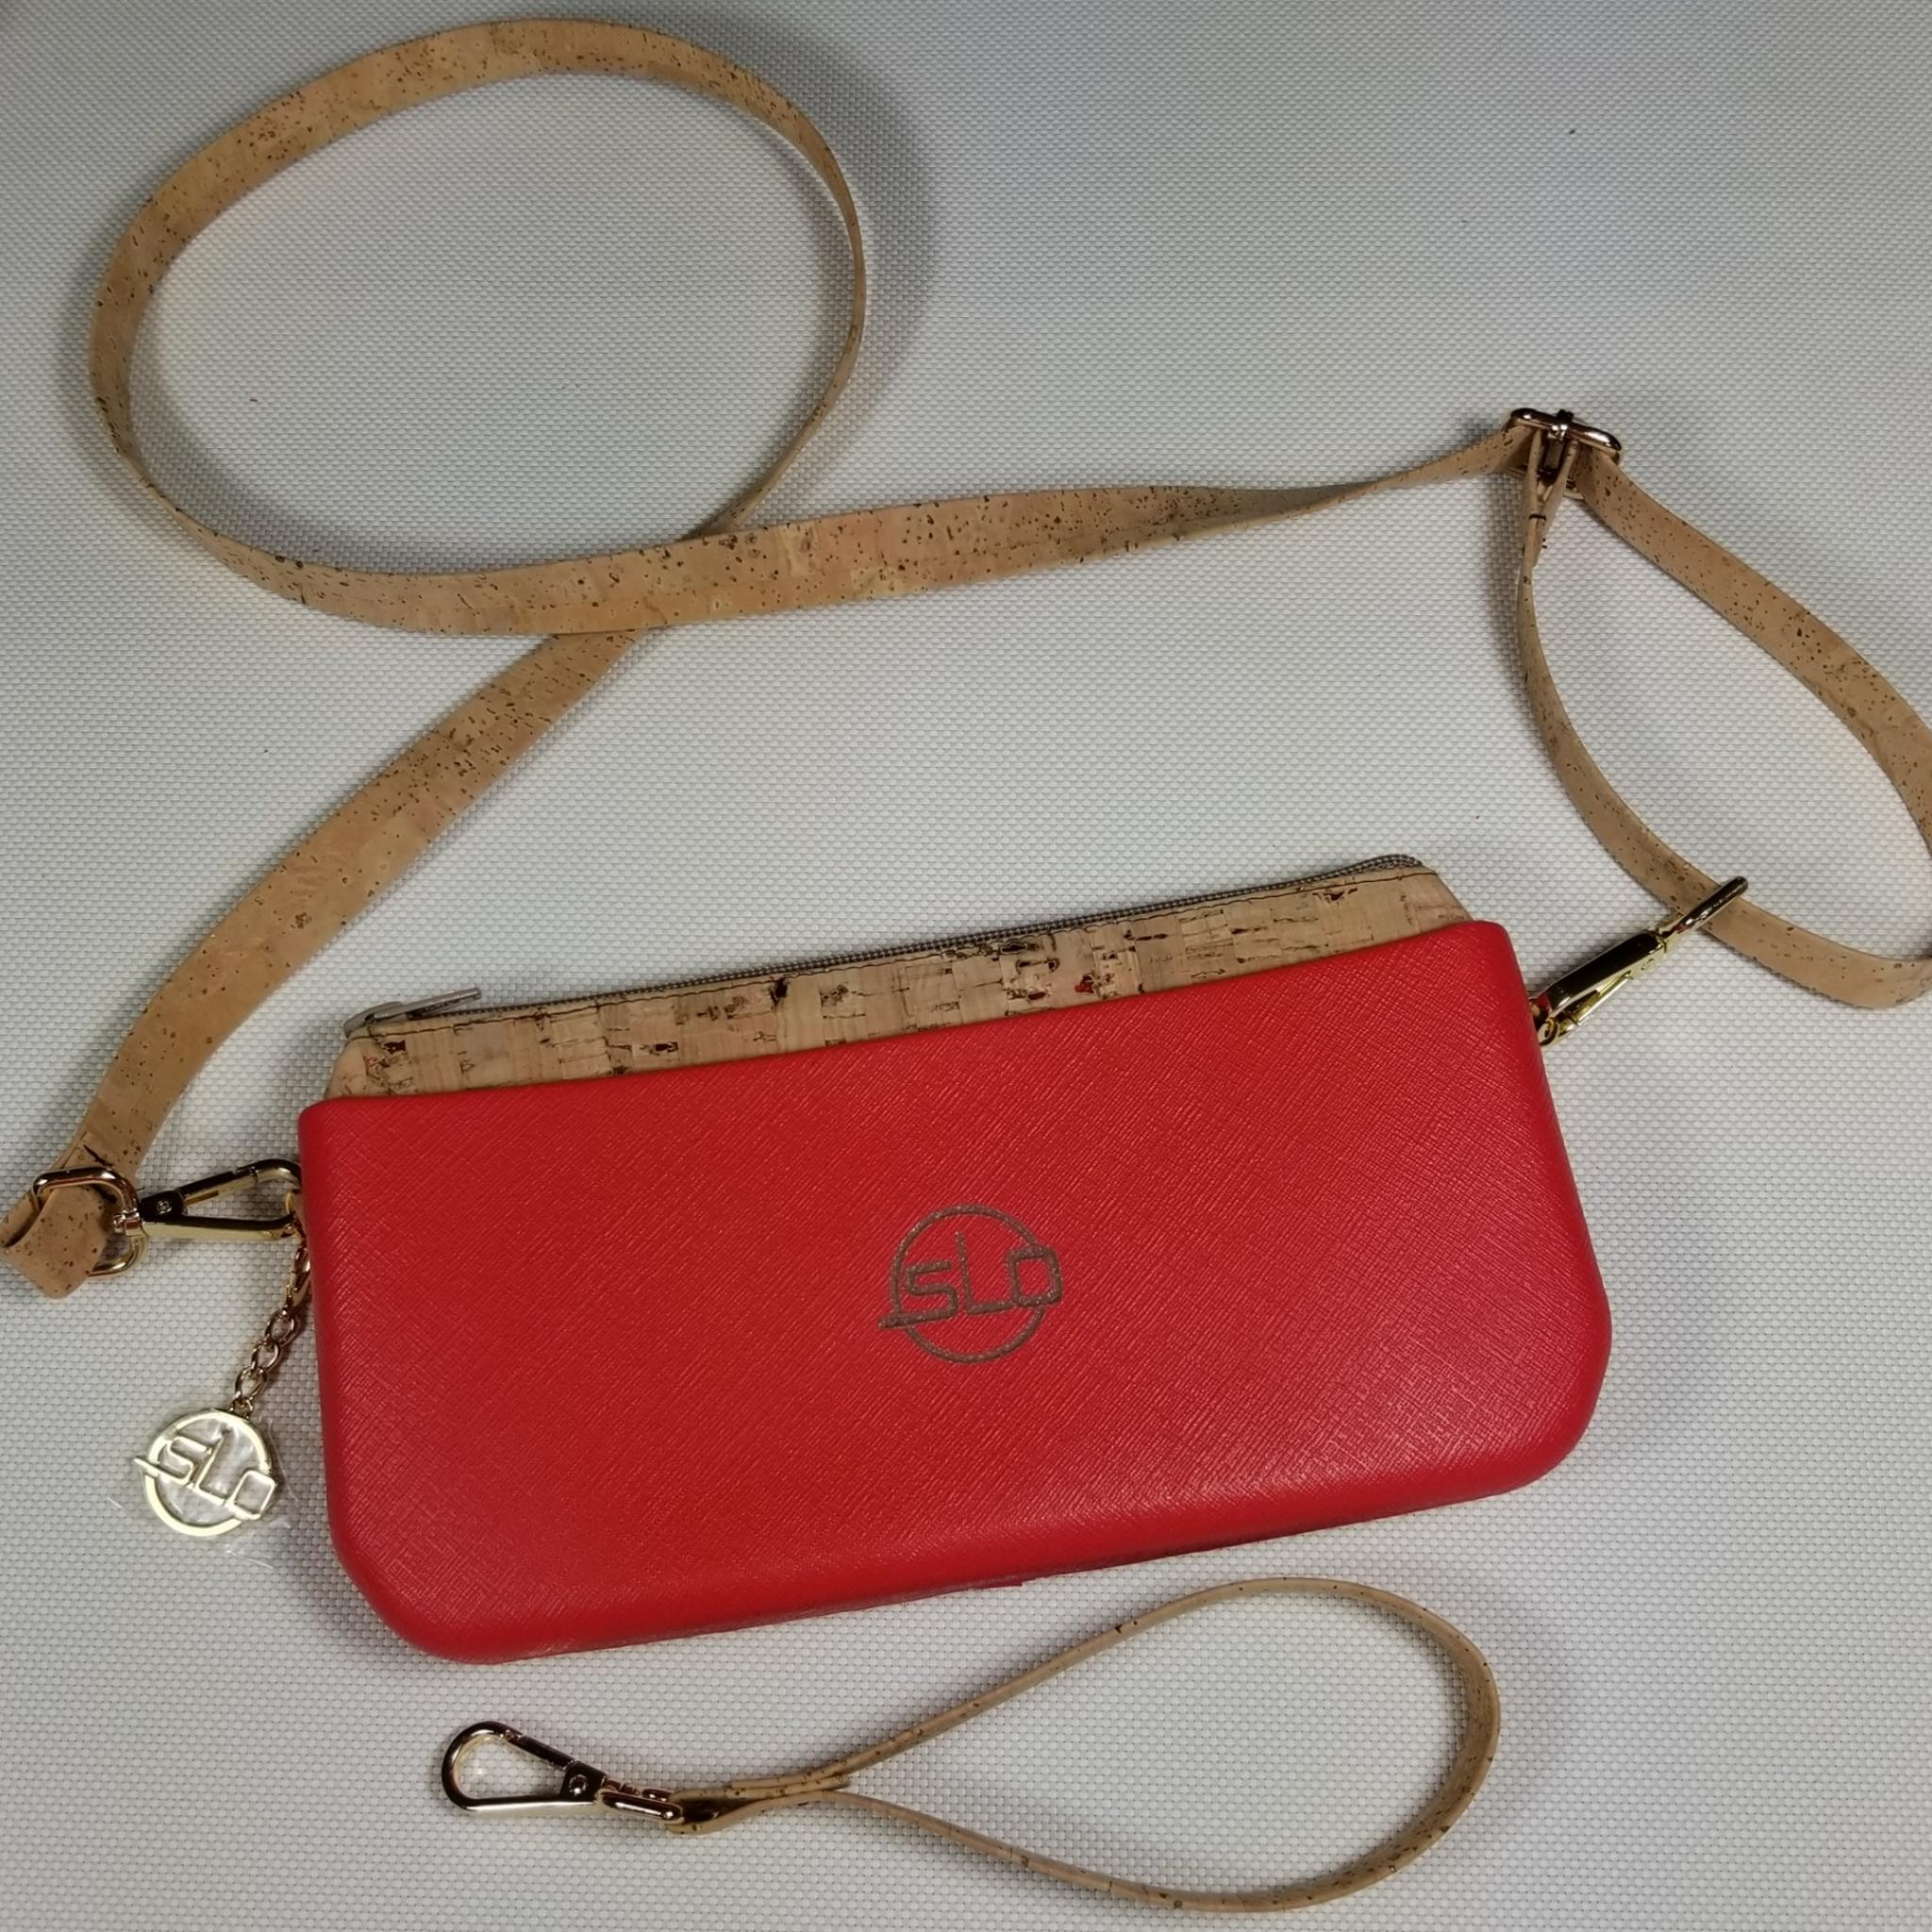 SLO Fashion Clutch - Red Body - Natural Cork